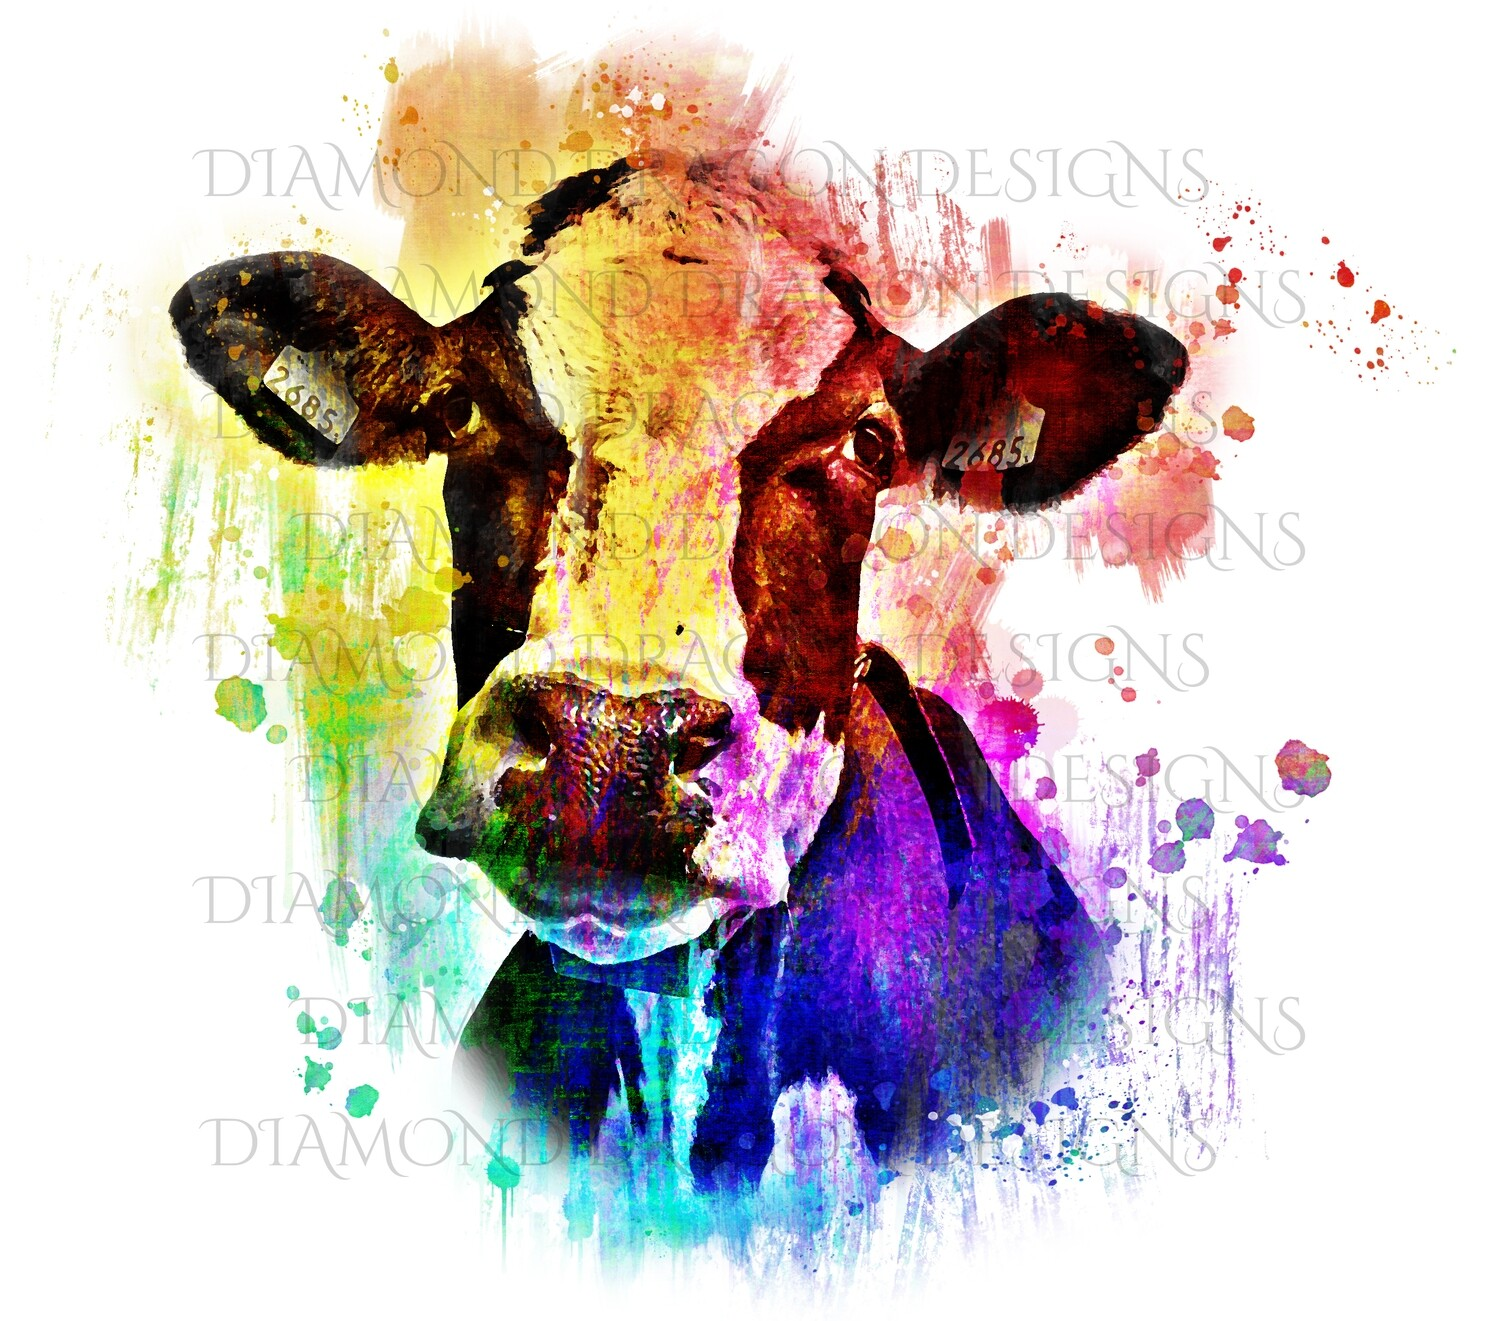 Cows - Heifer, Image, Cute Cow, Colorful, Rainbow Cow, Watercolor